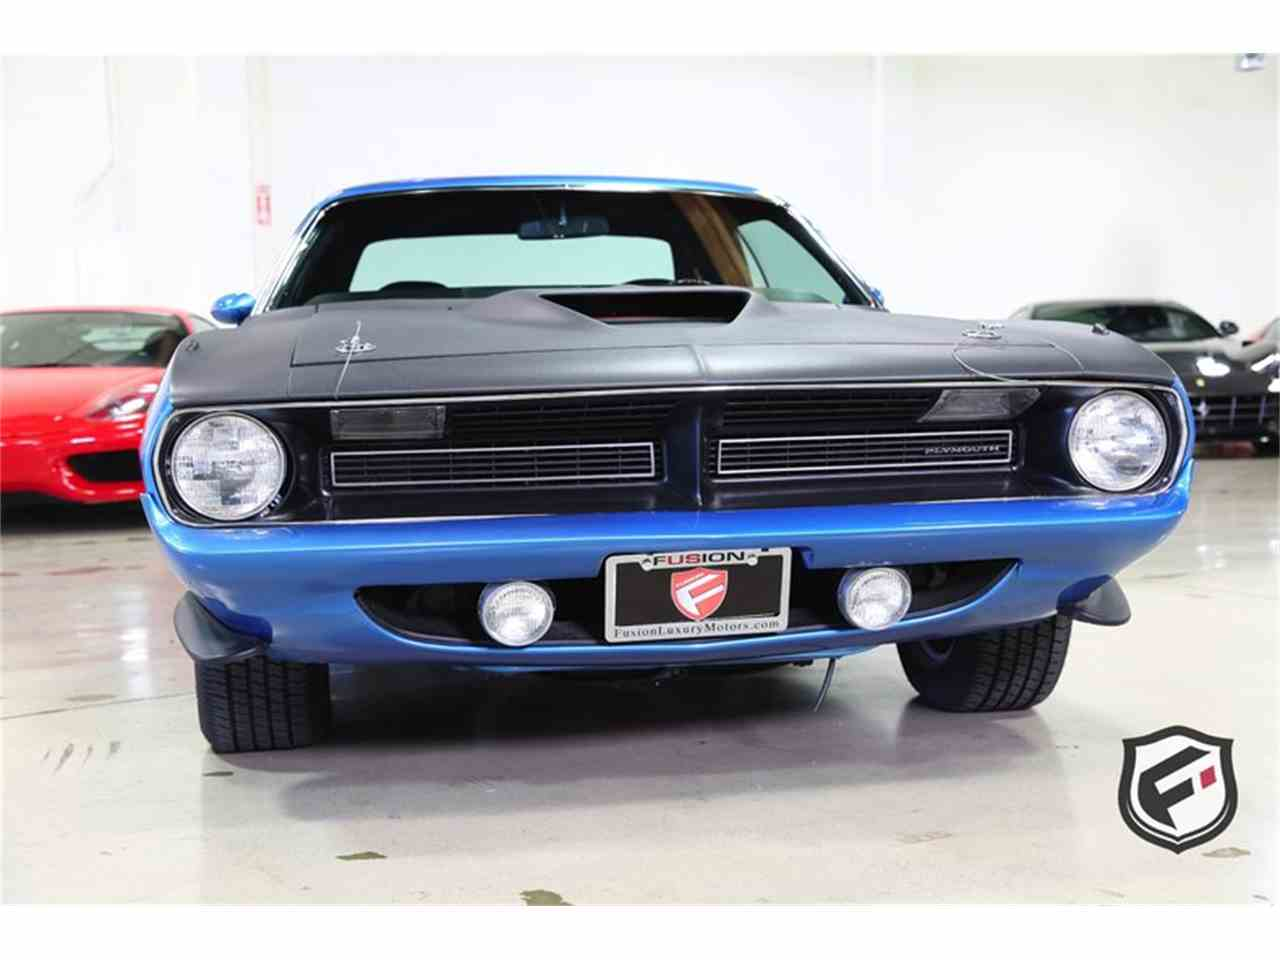 Large Picture of '70 Cuda Offered by Fusion Luxury Motors - MBSH